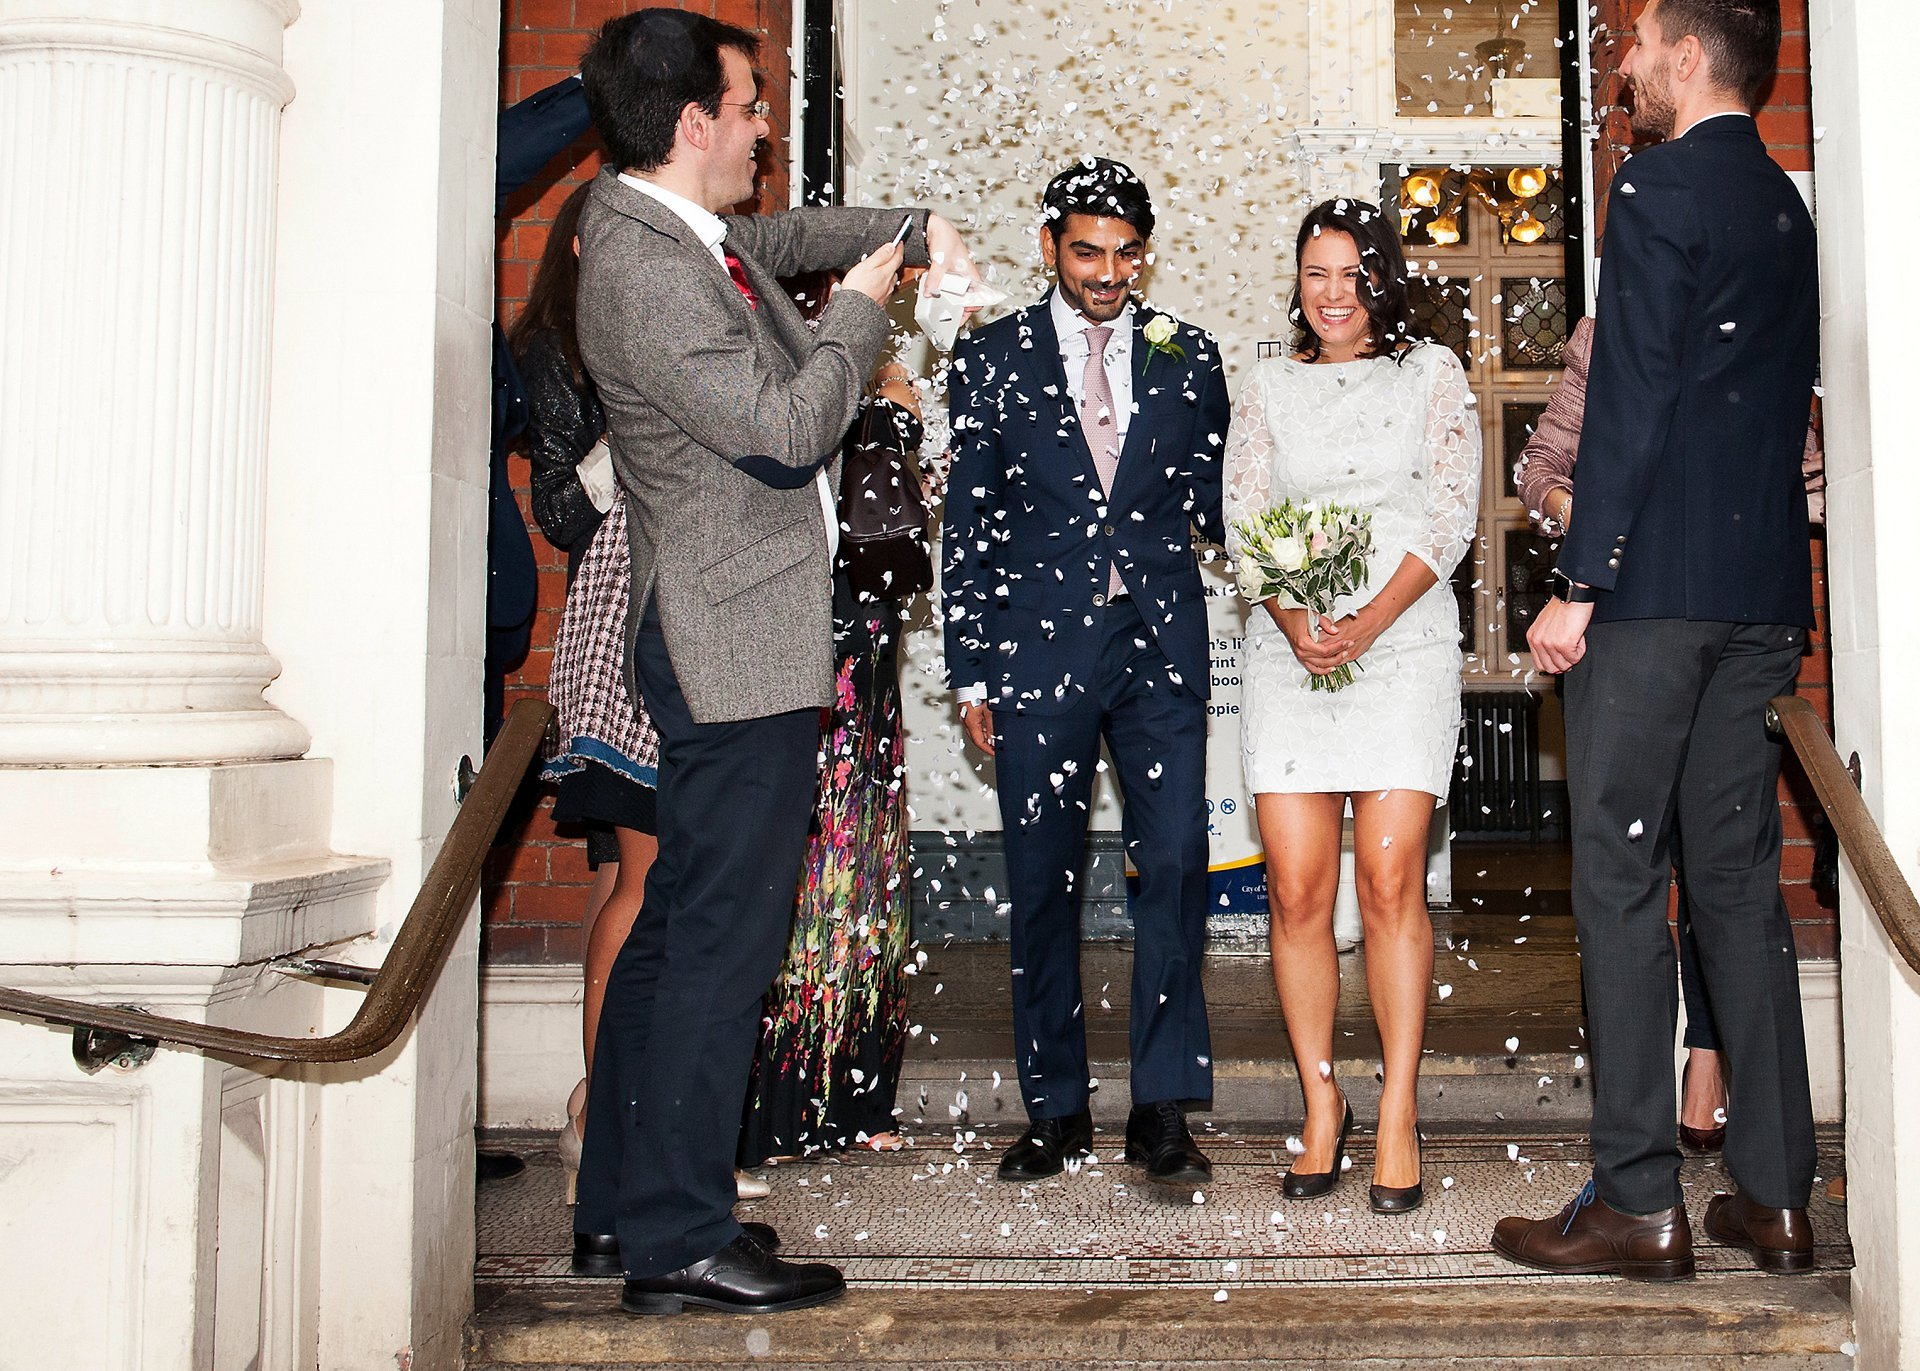 The bride and groom leaving Mayfair Library with guests throwing confetti inside the porch due to the heavy rain outside